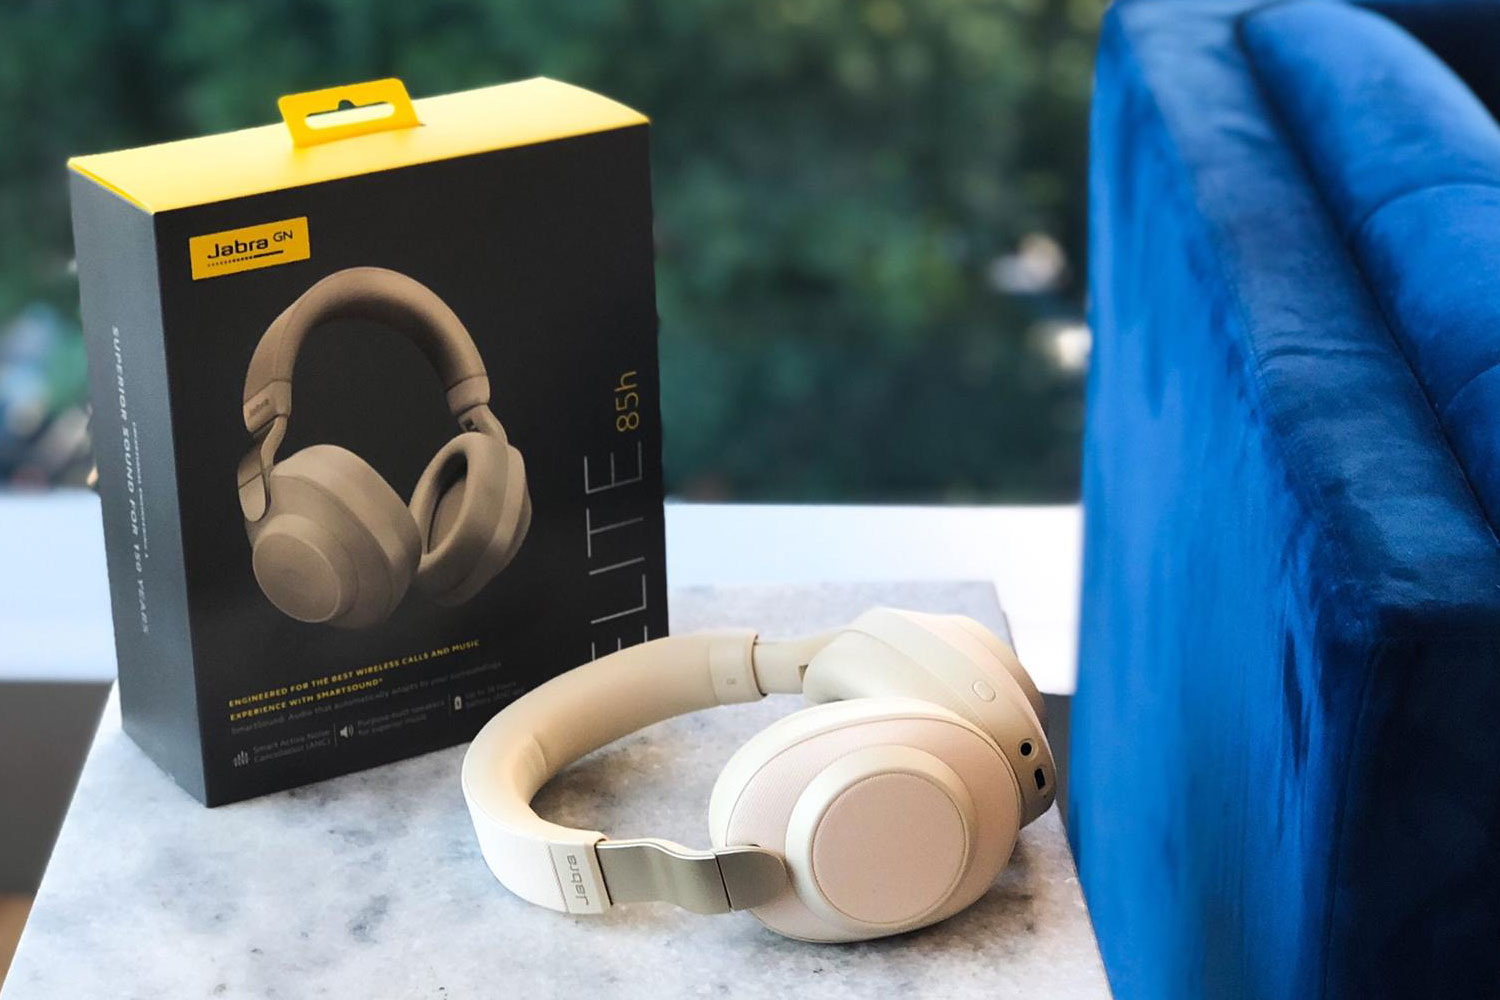 Jabra Elite 85h headphones